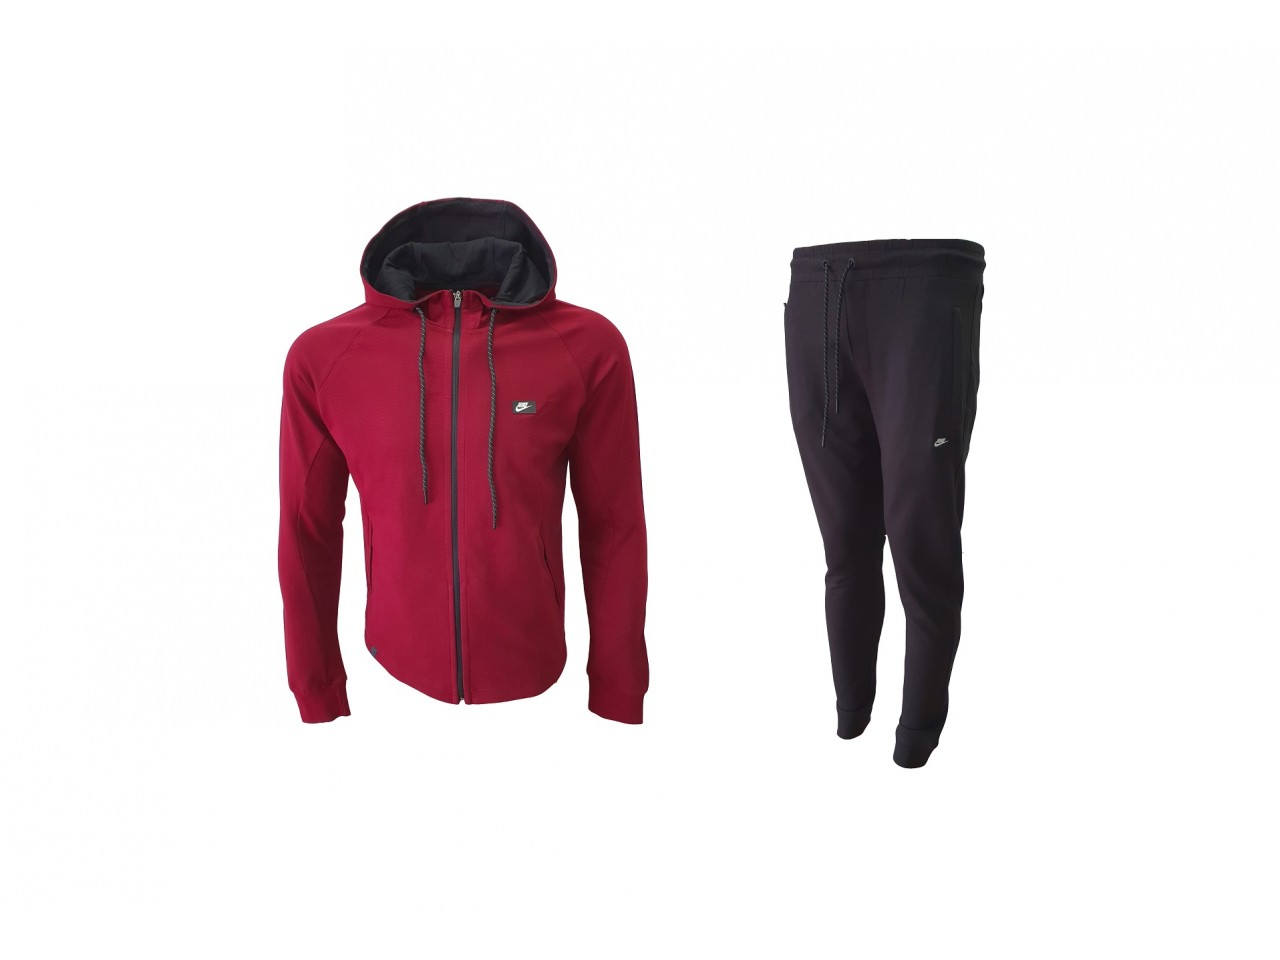 Nike Tracksuit New Model Bordo & Dark Grey